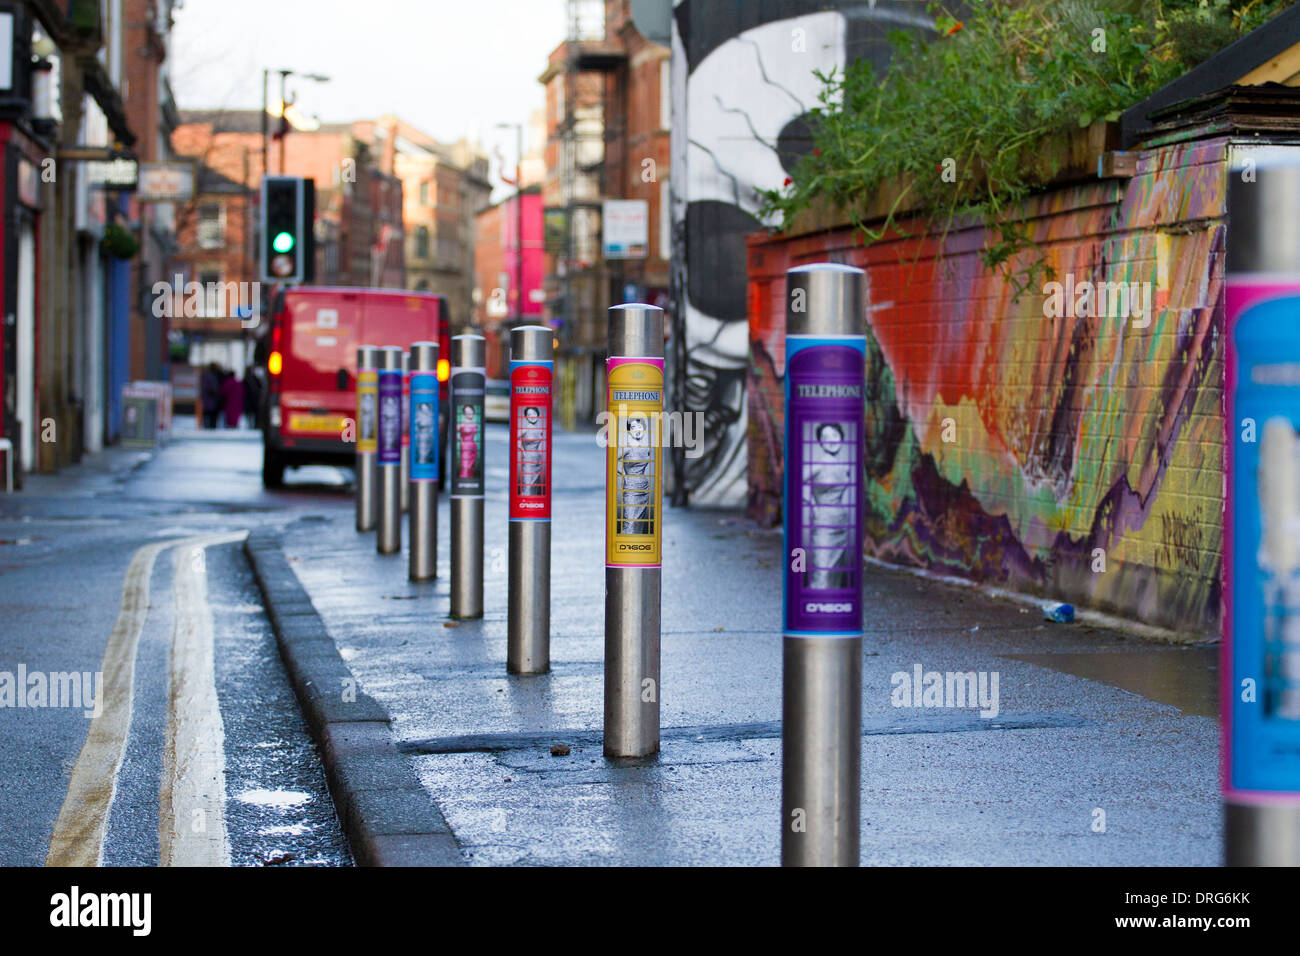 Telephone Stainless steel posts, pedestrian barriers and poster advertising in Stevenson Square, Northern Quarter, Stock Photo